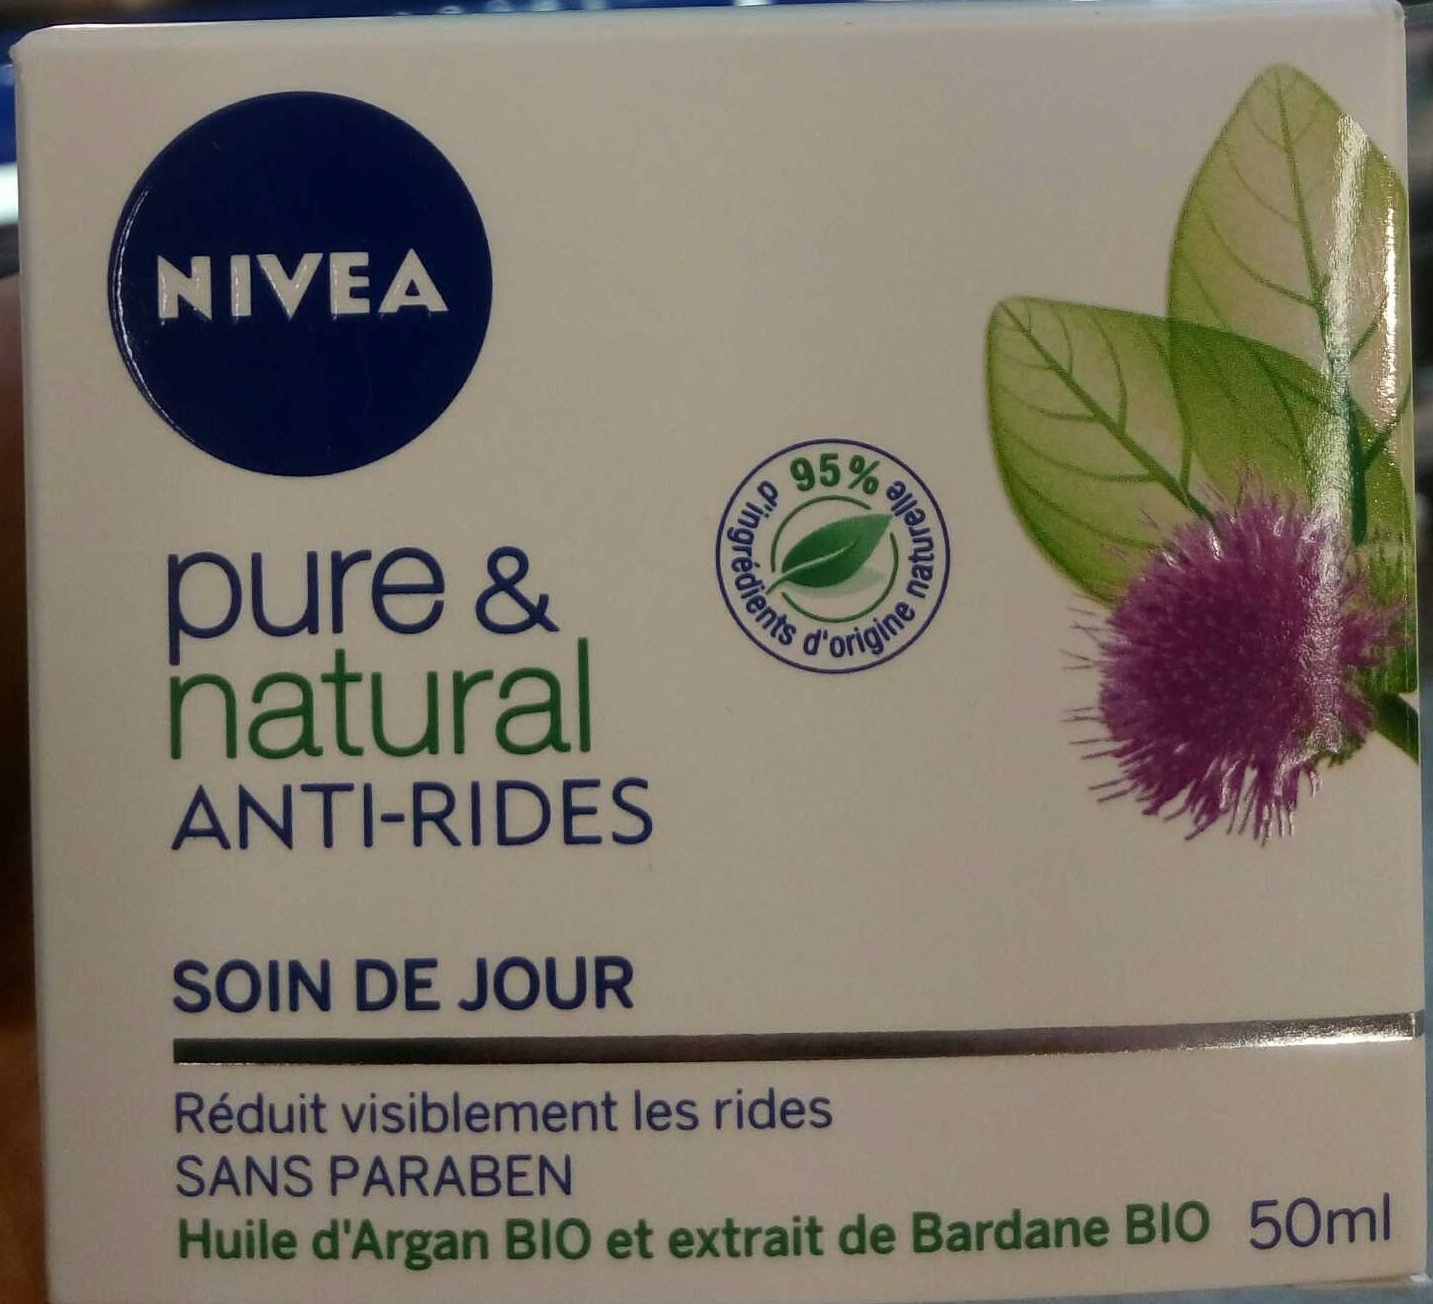 Pure & natural anti-rides Soin de jour - Product